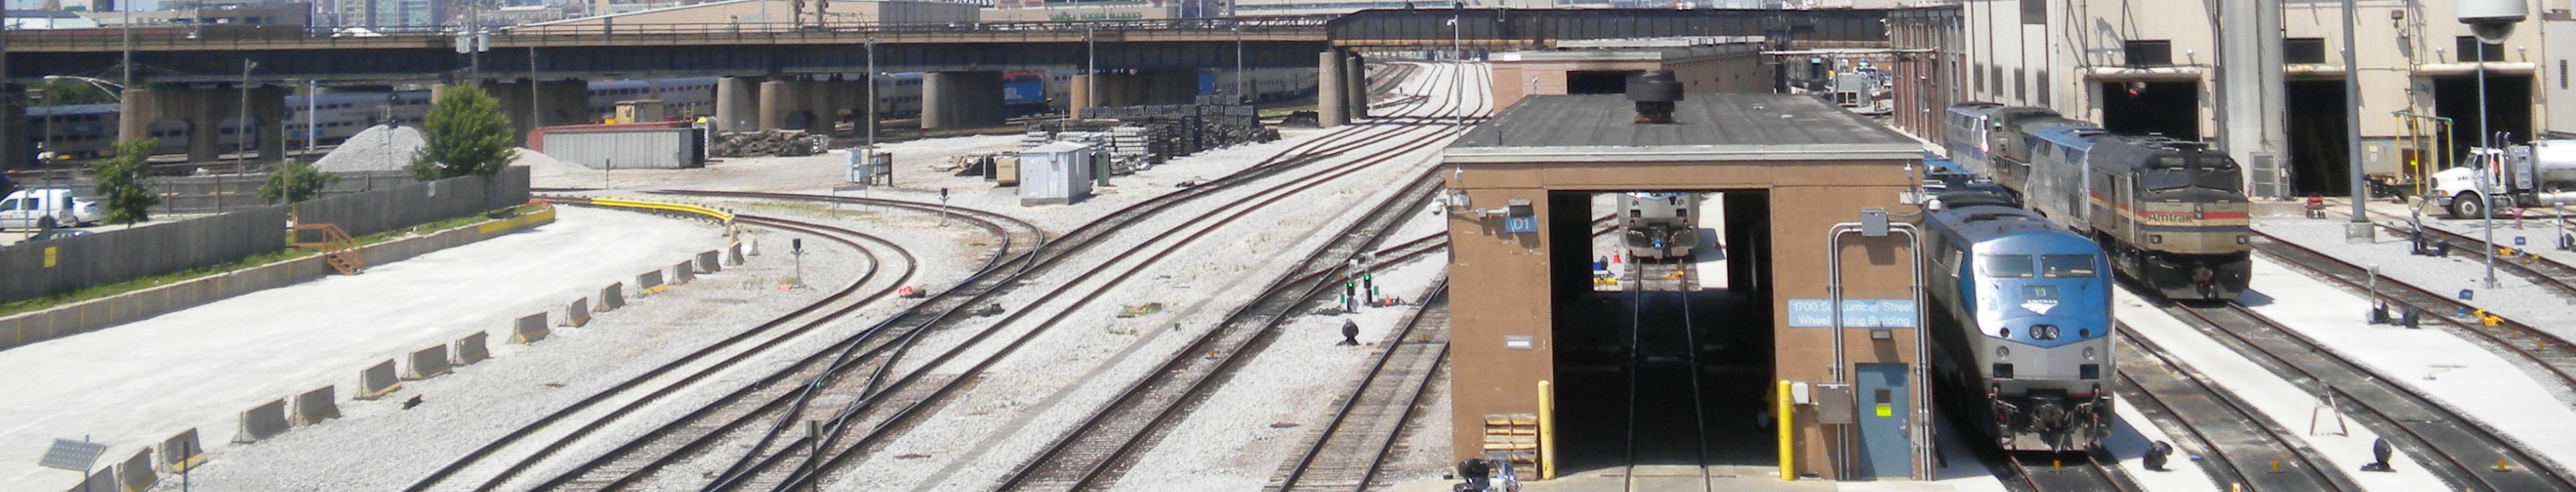 Chicago, Canal street coach yard for Amtrak & Metra